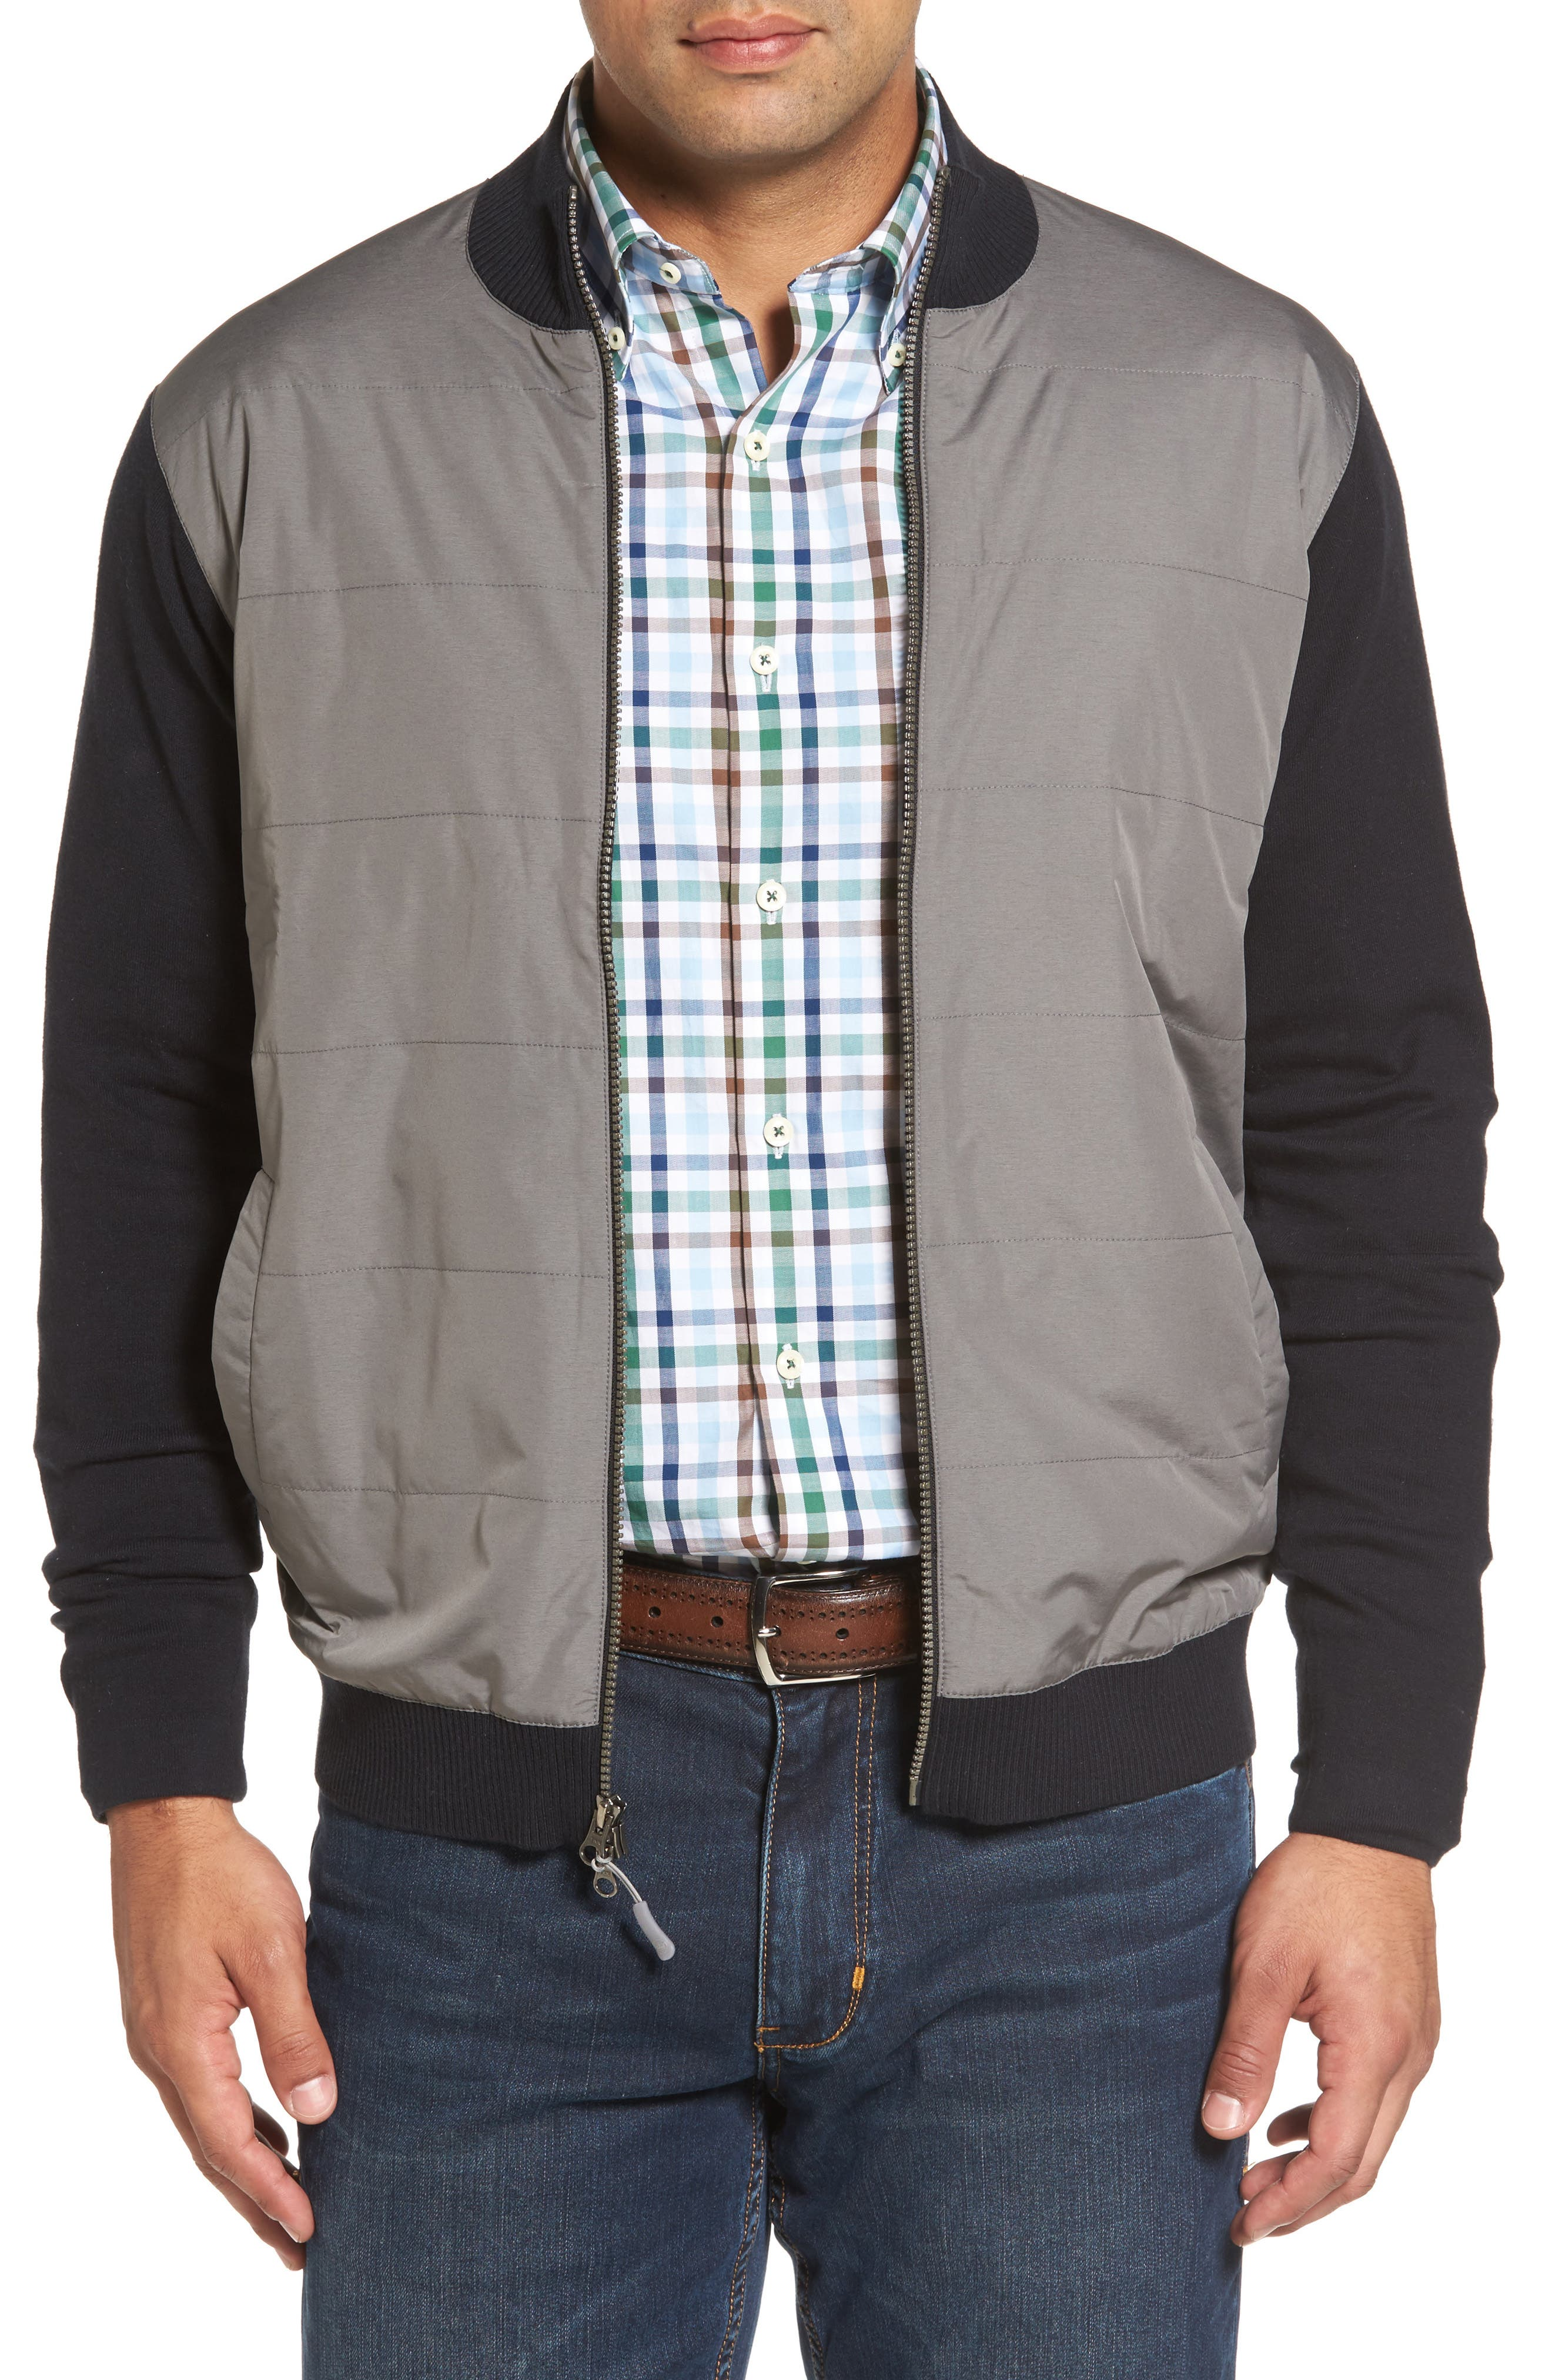 Main Image - Peter Millar Patterson Zip Hybrid Jacket